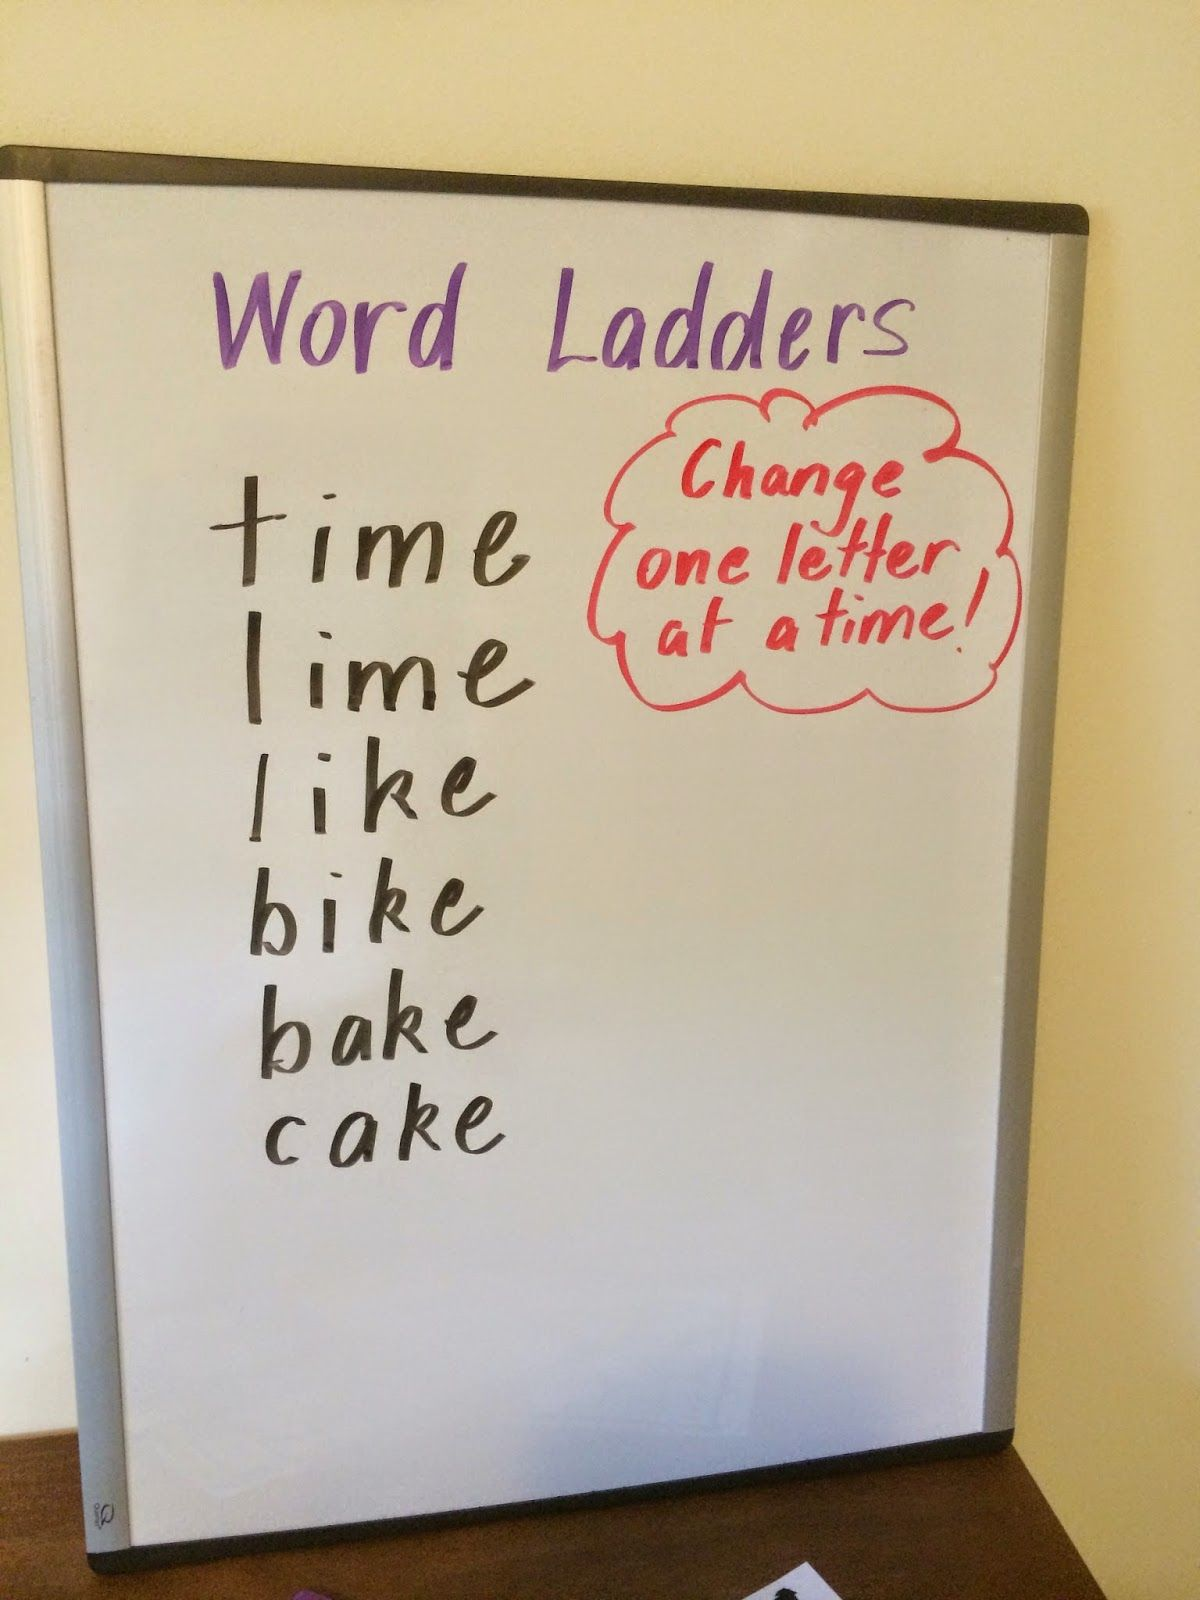 Word Ladders   Great Literacy Game    Fun Games 4 Learning   Games     Word Ladders   Great Literacy Game    Fun Games 4 Learning